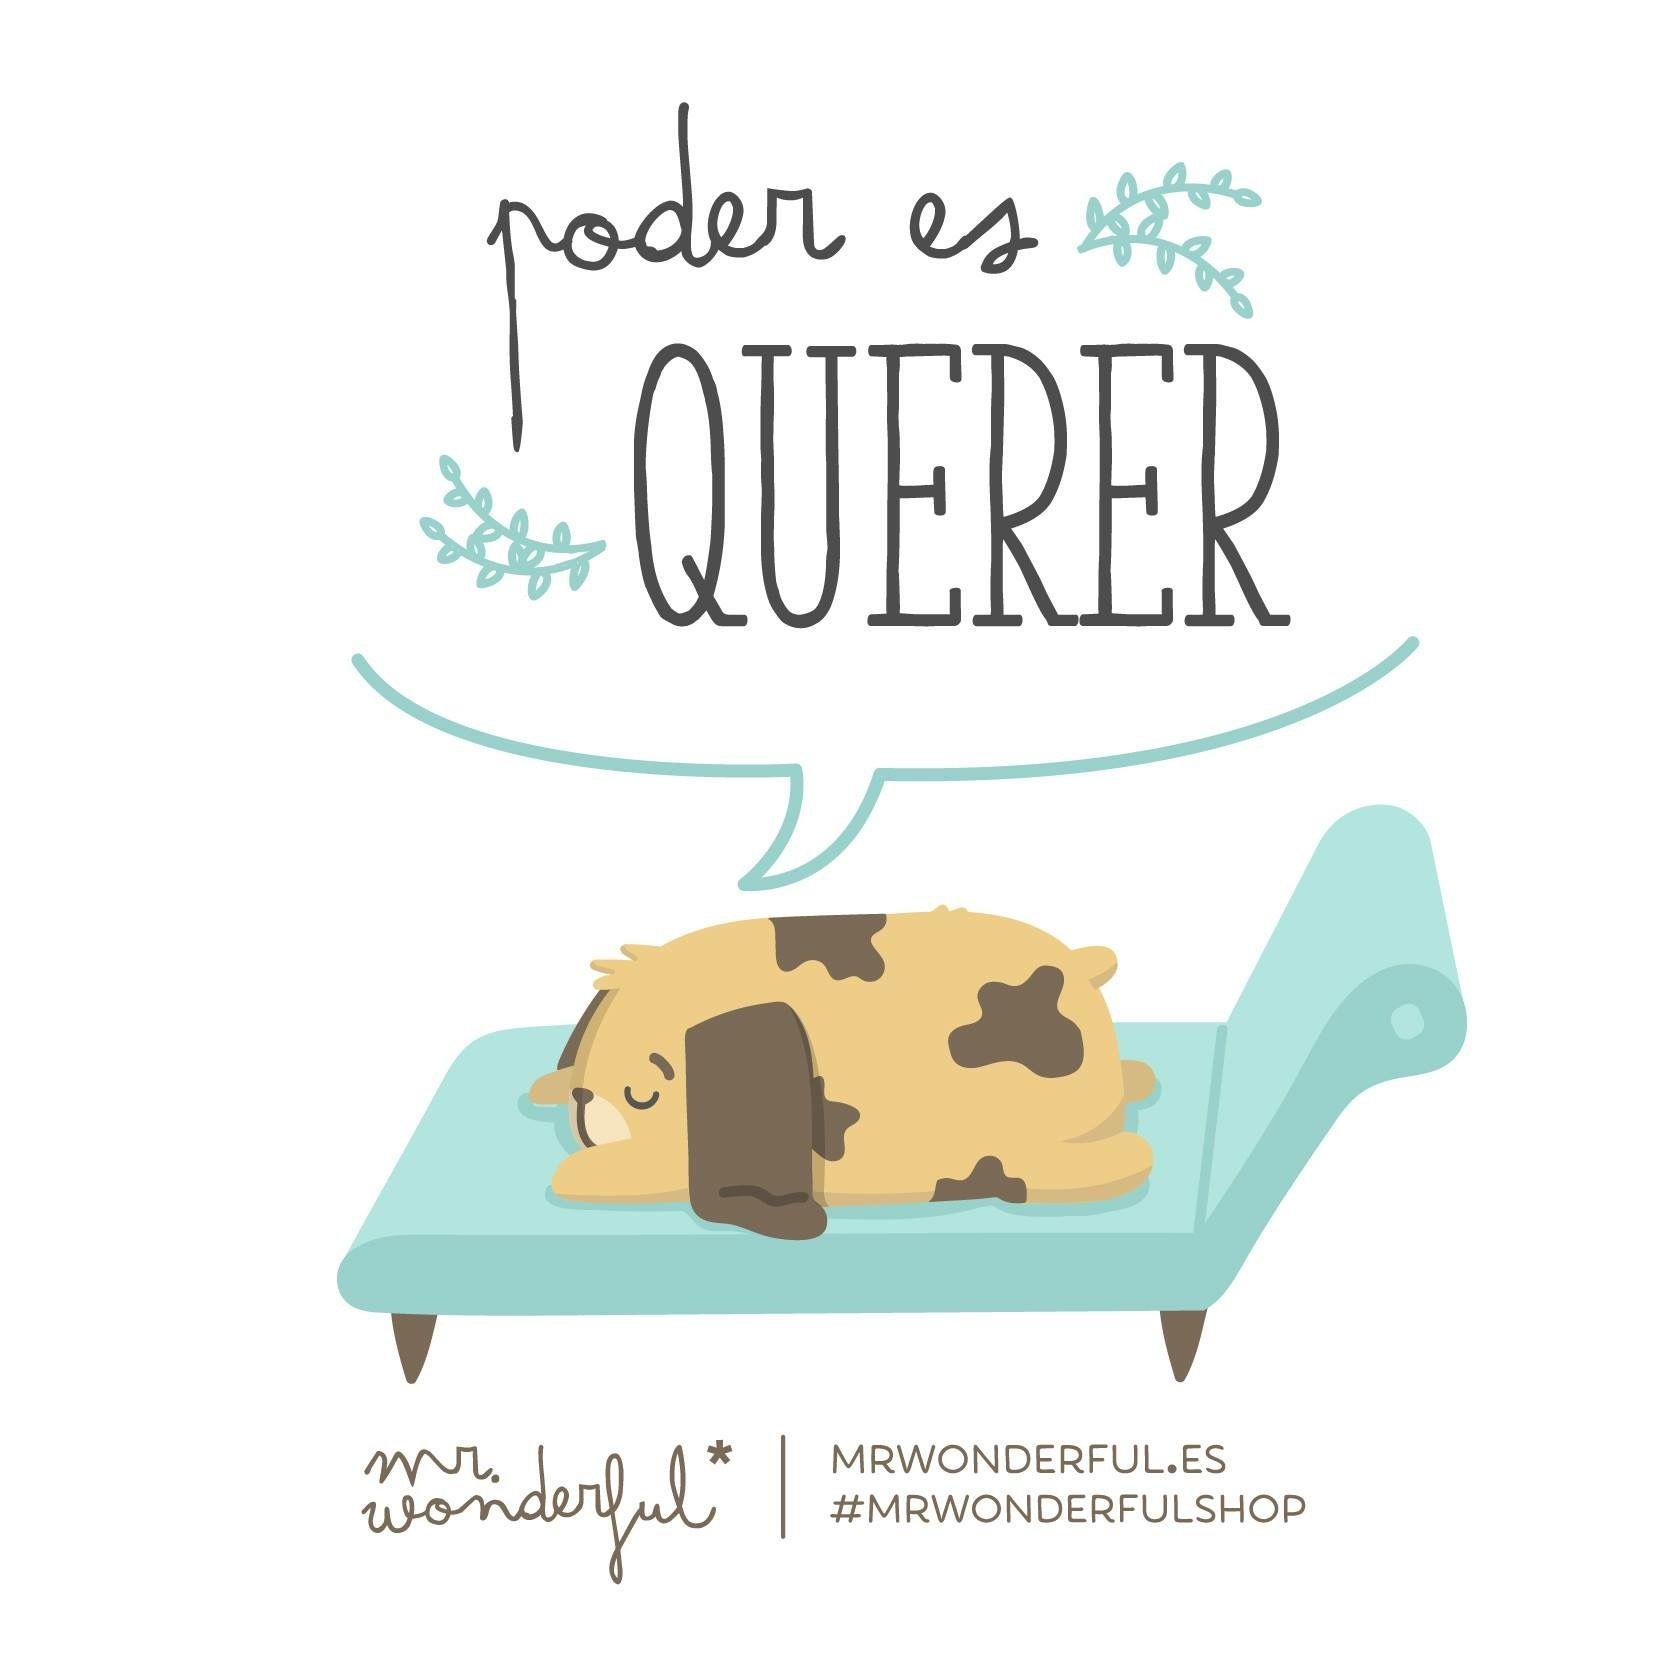 Funny Quotes About Life Lessons Pinpilar Cañadas On Mrwonderfull  Pinterest